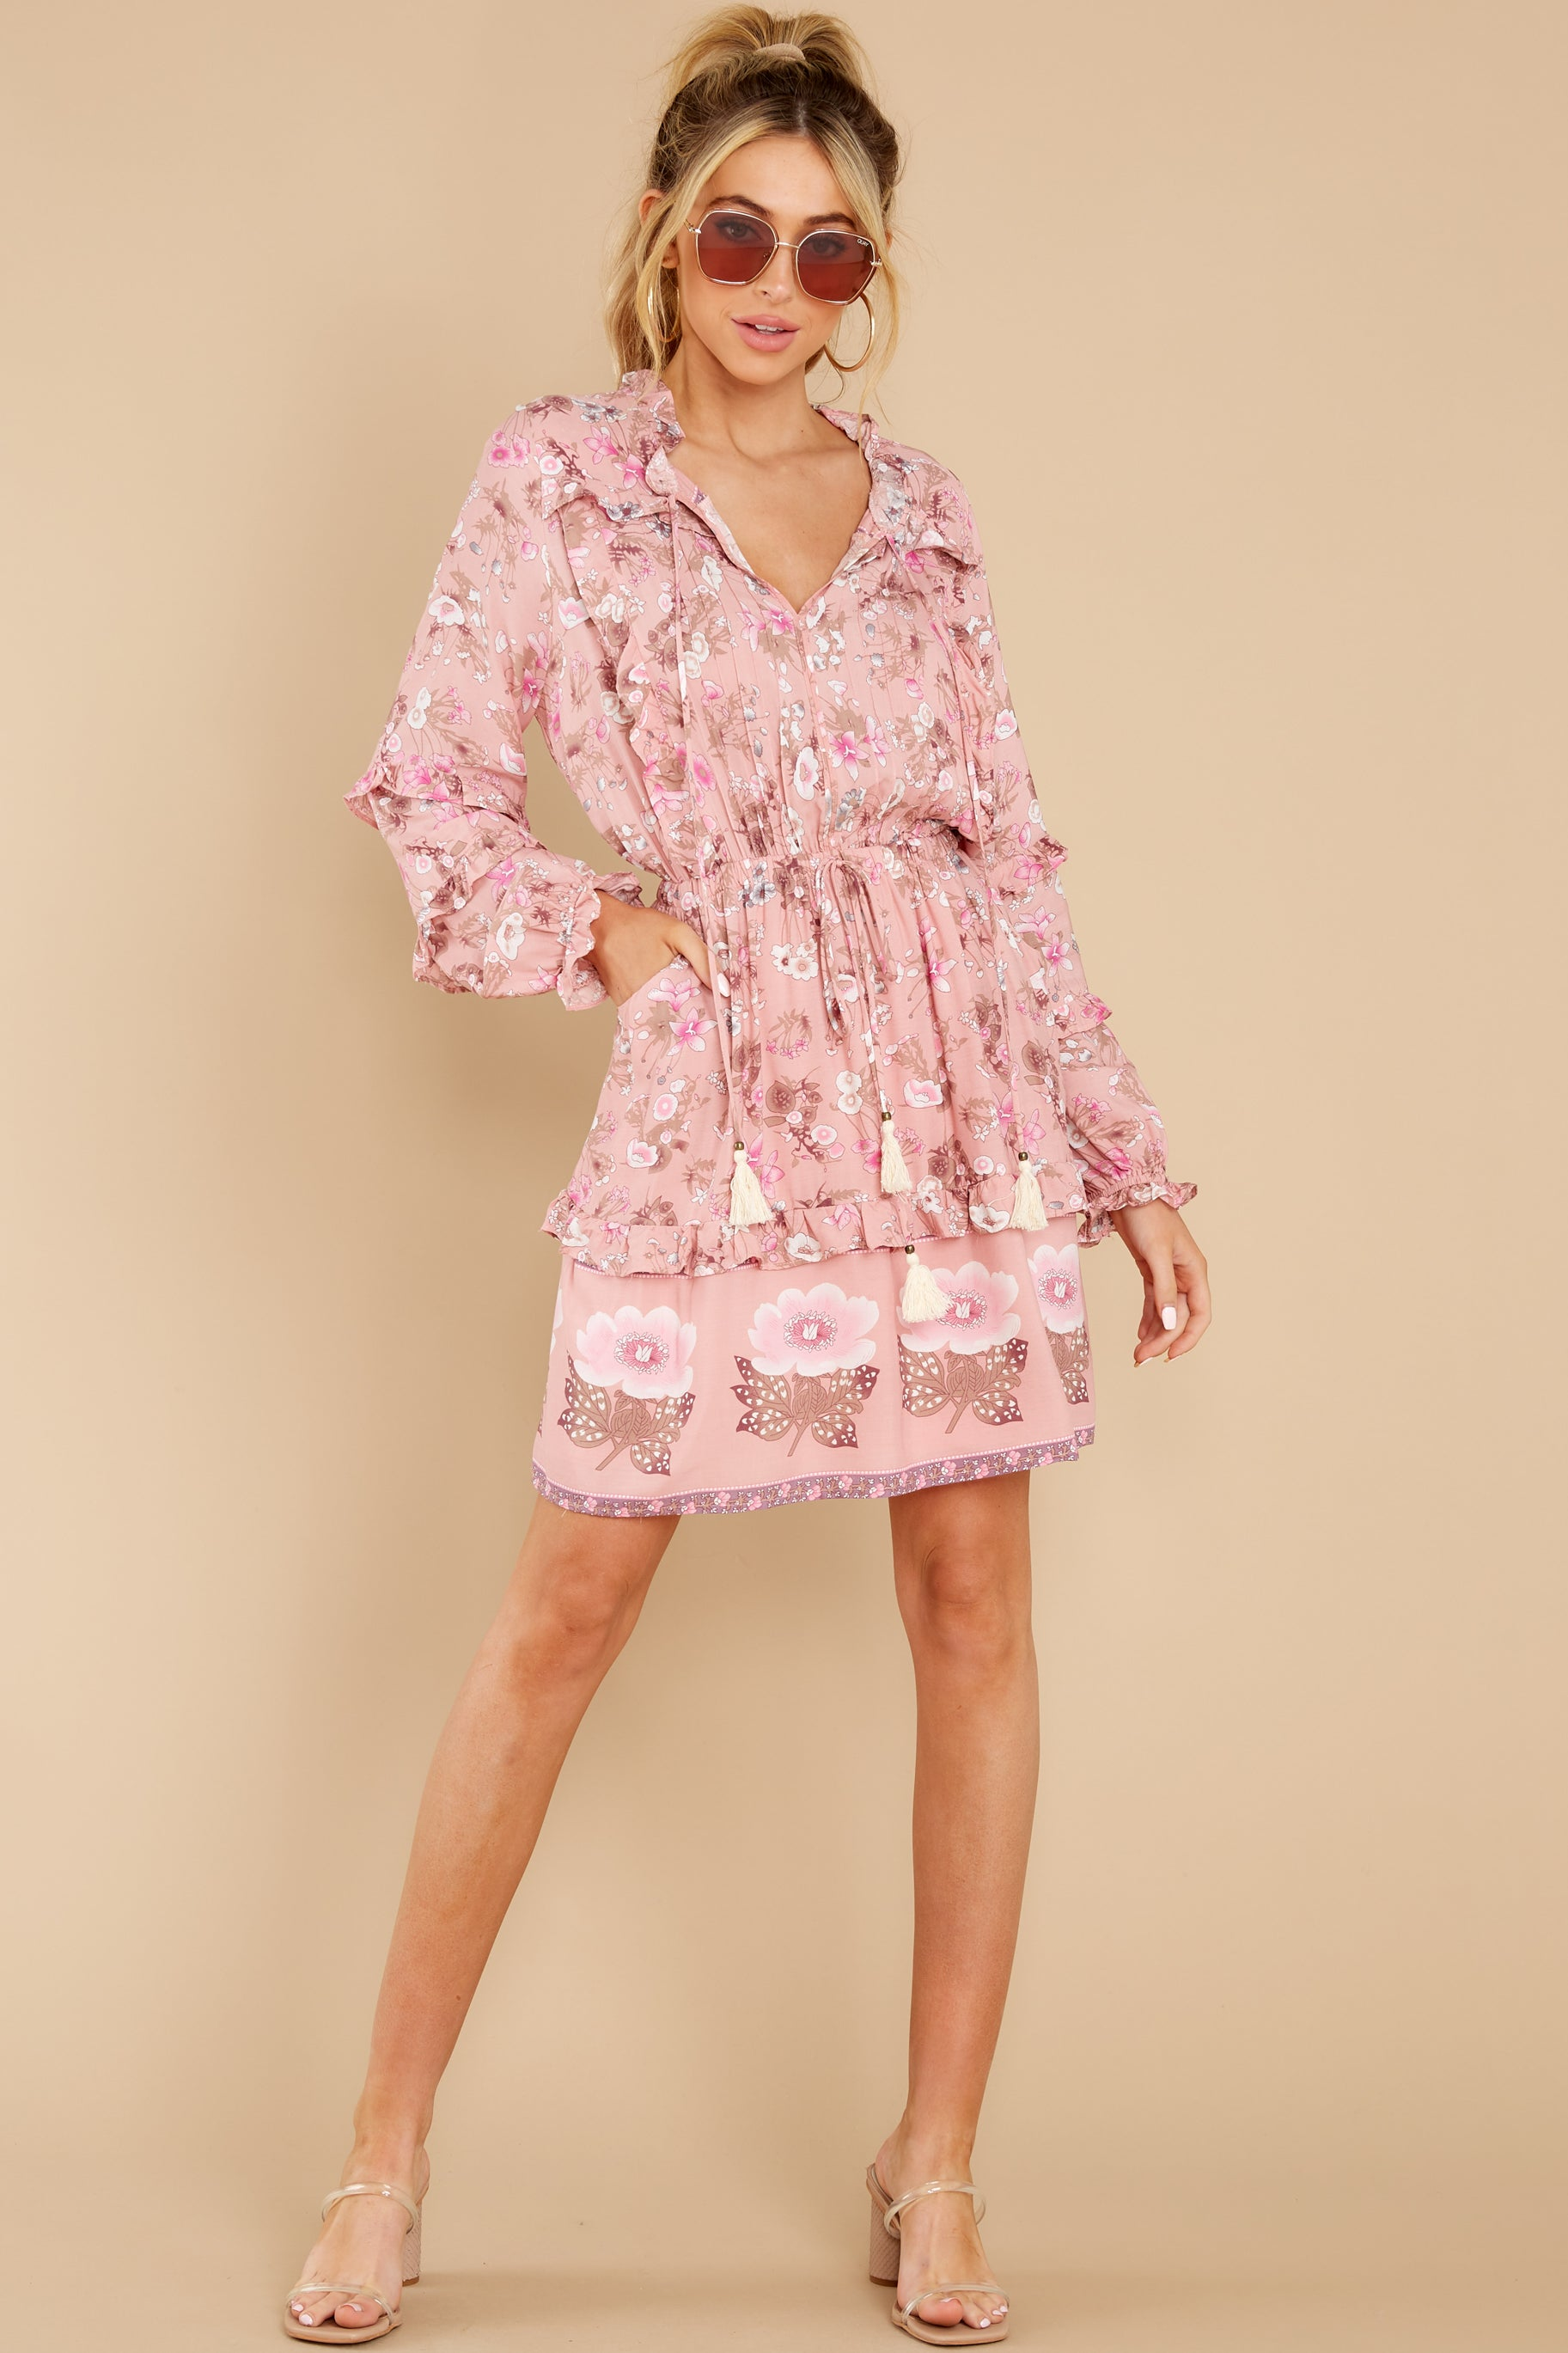 4 Ventura Nights Mauve Pink Floral Print Dress at reddress.com